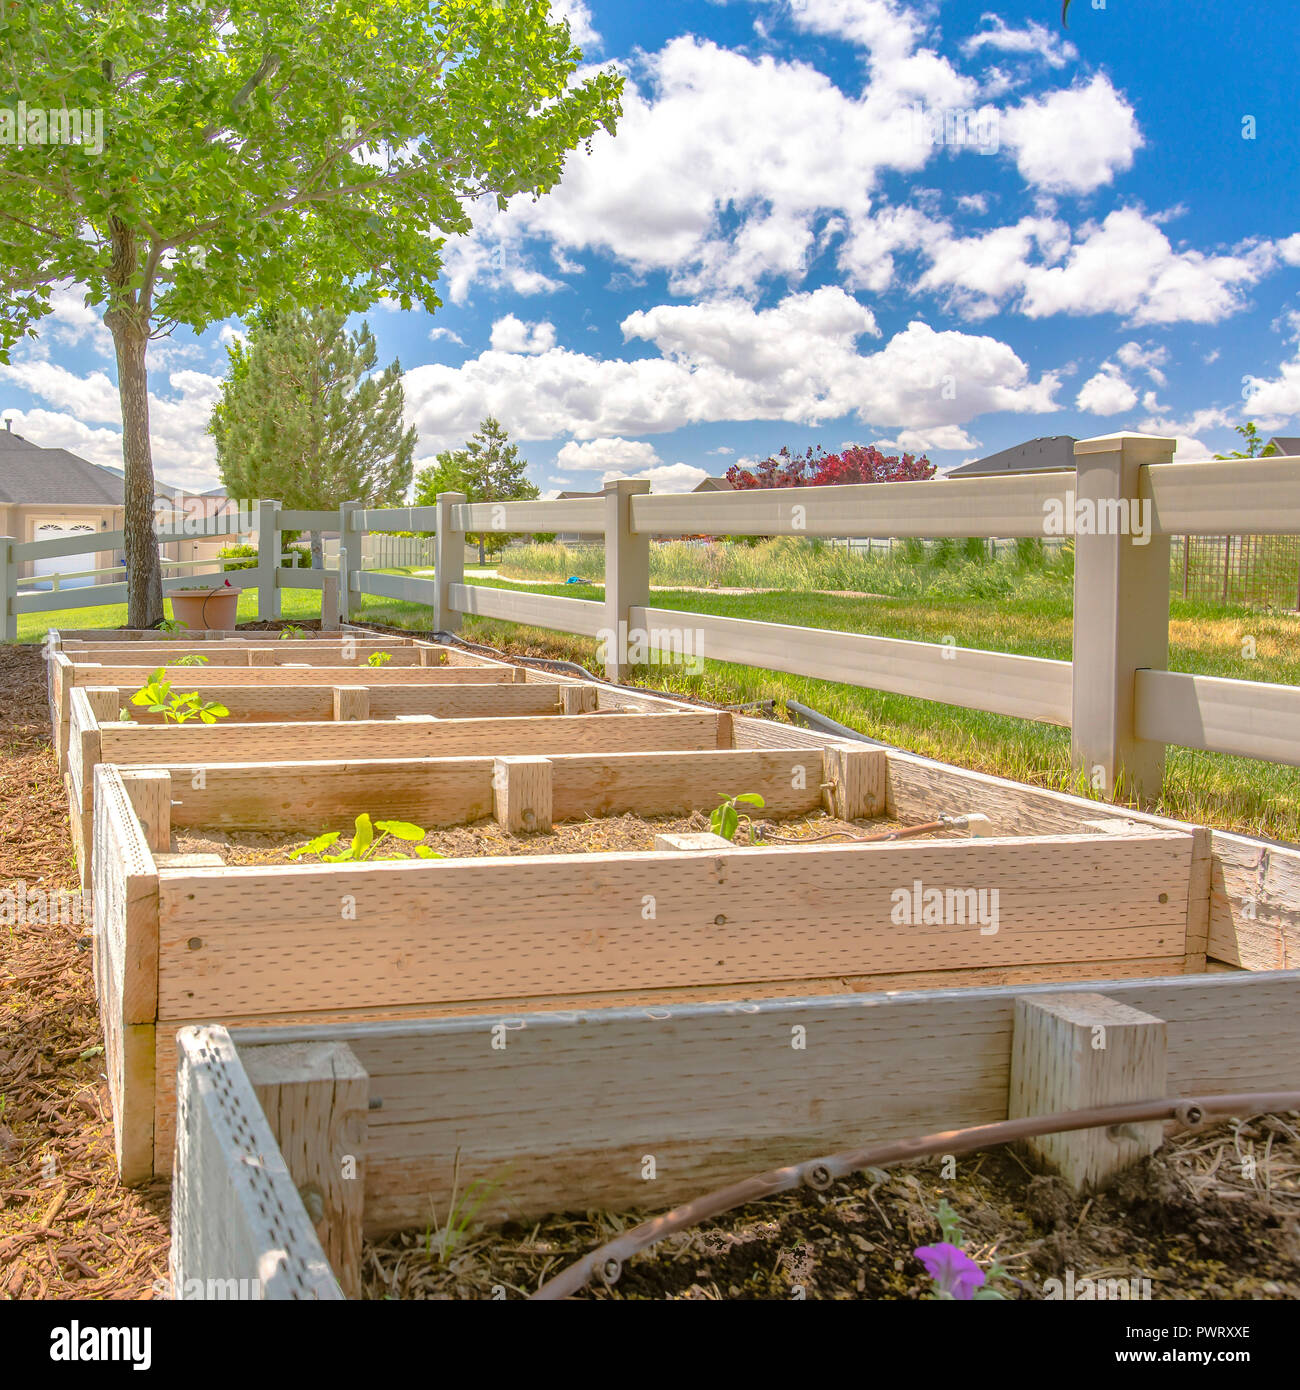 Backyard with seedling boxes and a scenic view - Stock Image